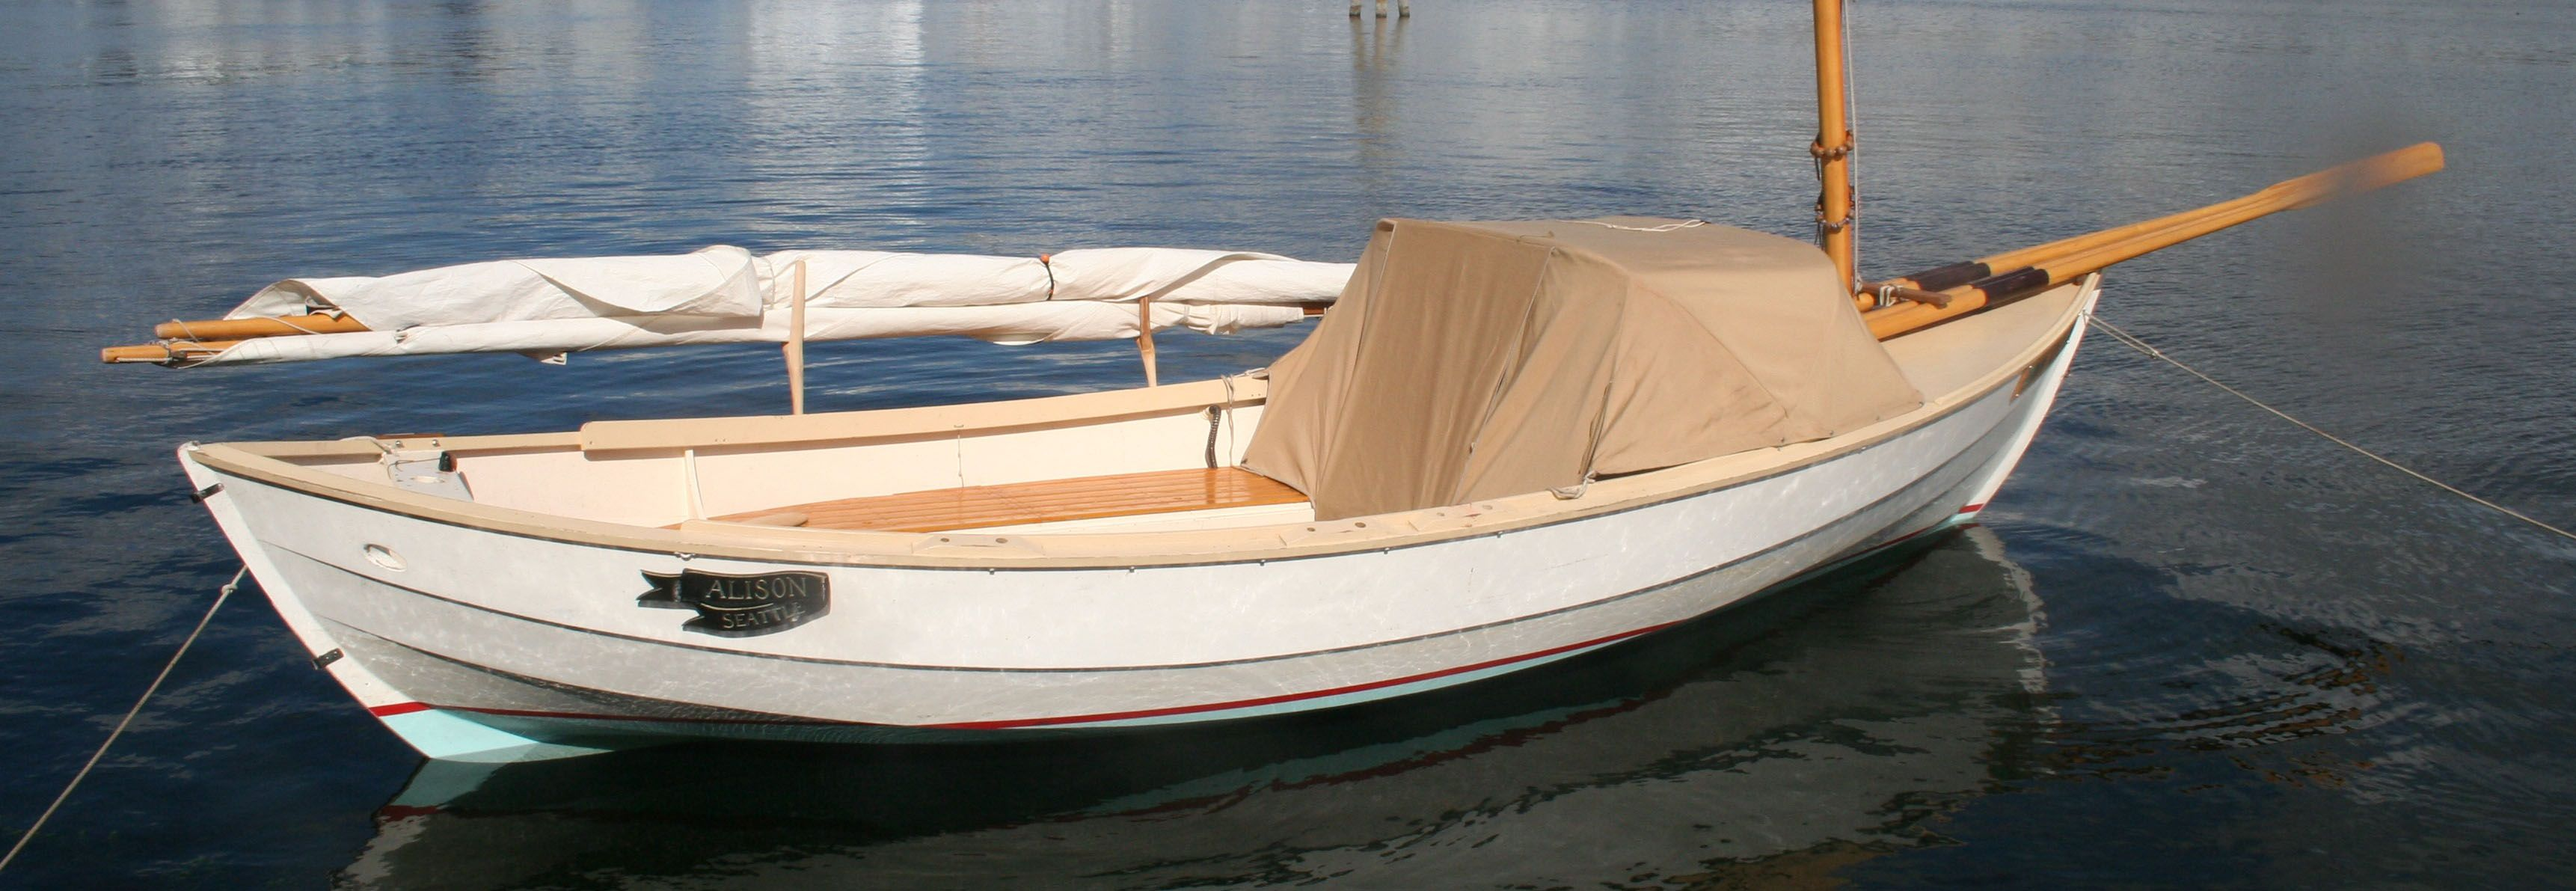 Caledonia Yawl Rig and Oar Storage idea from Small Boats